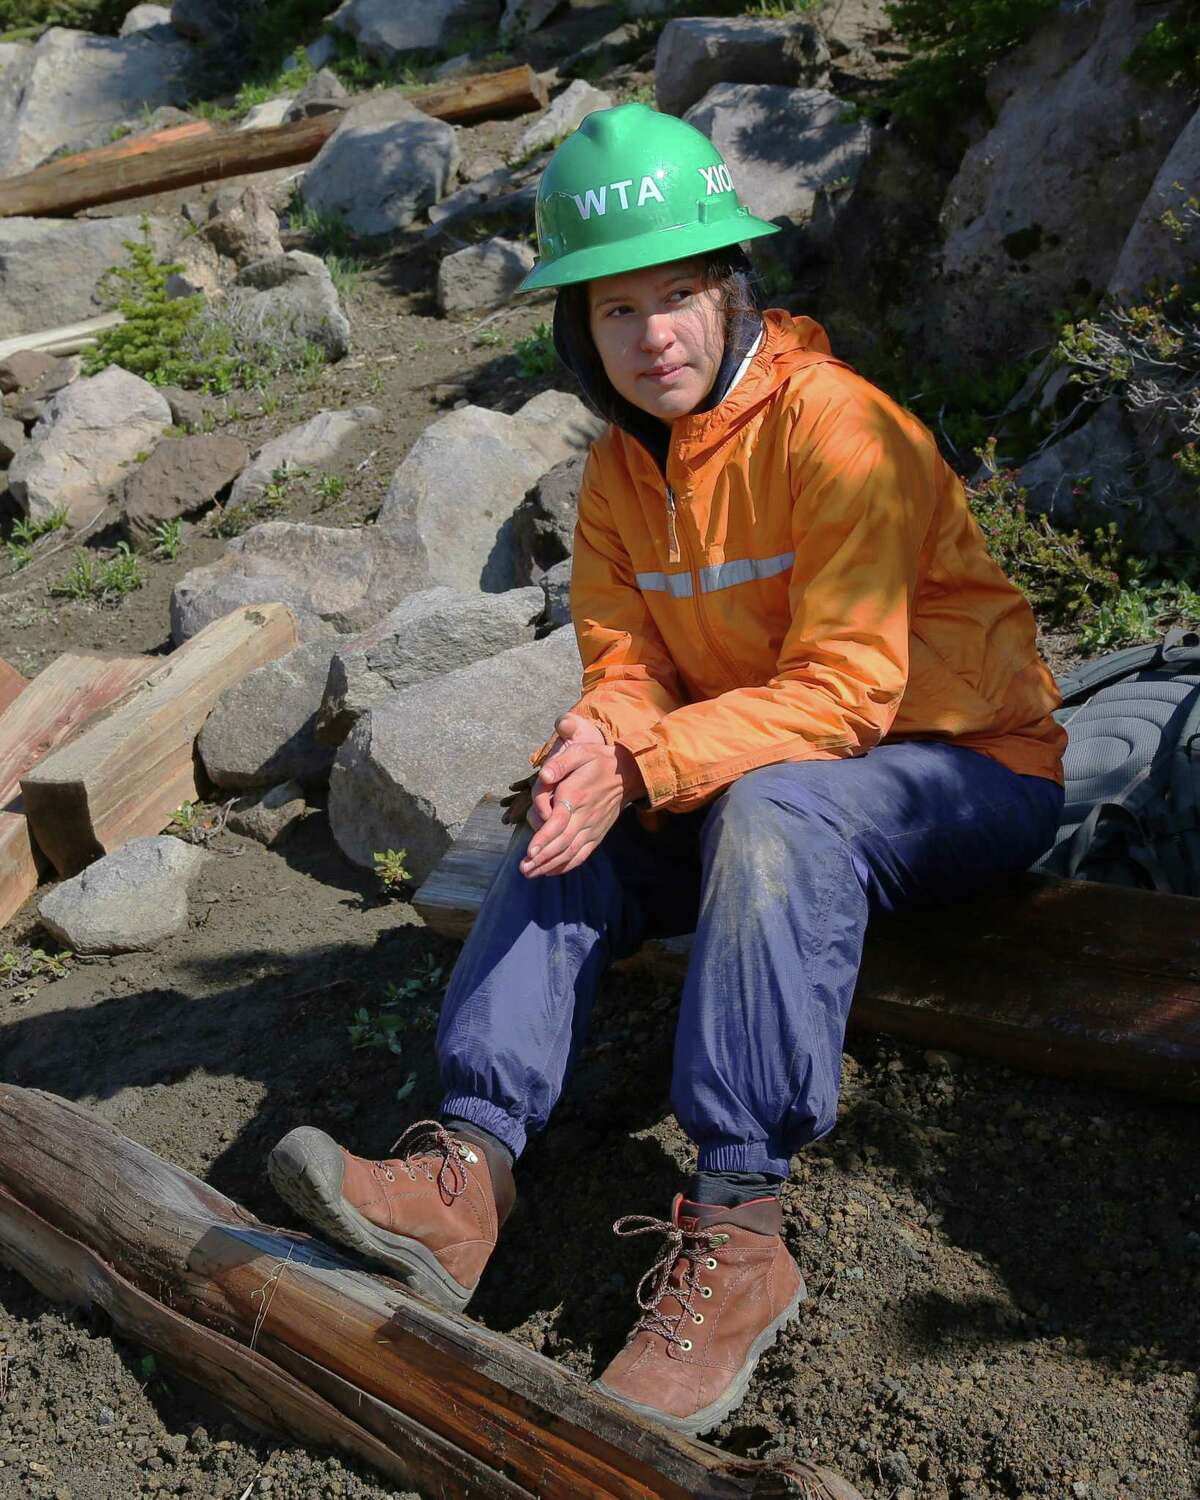 Xiomara Choto-Mueller, 16, takes a break as she and a crew of 14-18-year-old Latina girls works to build steps into the Wonderland Trail at Mt. Rainier, Thursday, July 18, 2019. They are a part of a Latino Conservation Week camp, hosted by Latino Outdoors and Washington Trails Association, which intends to expose Latinx youths to nature and outdoor careers and experiences.